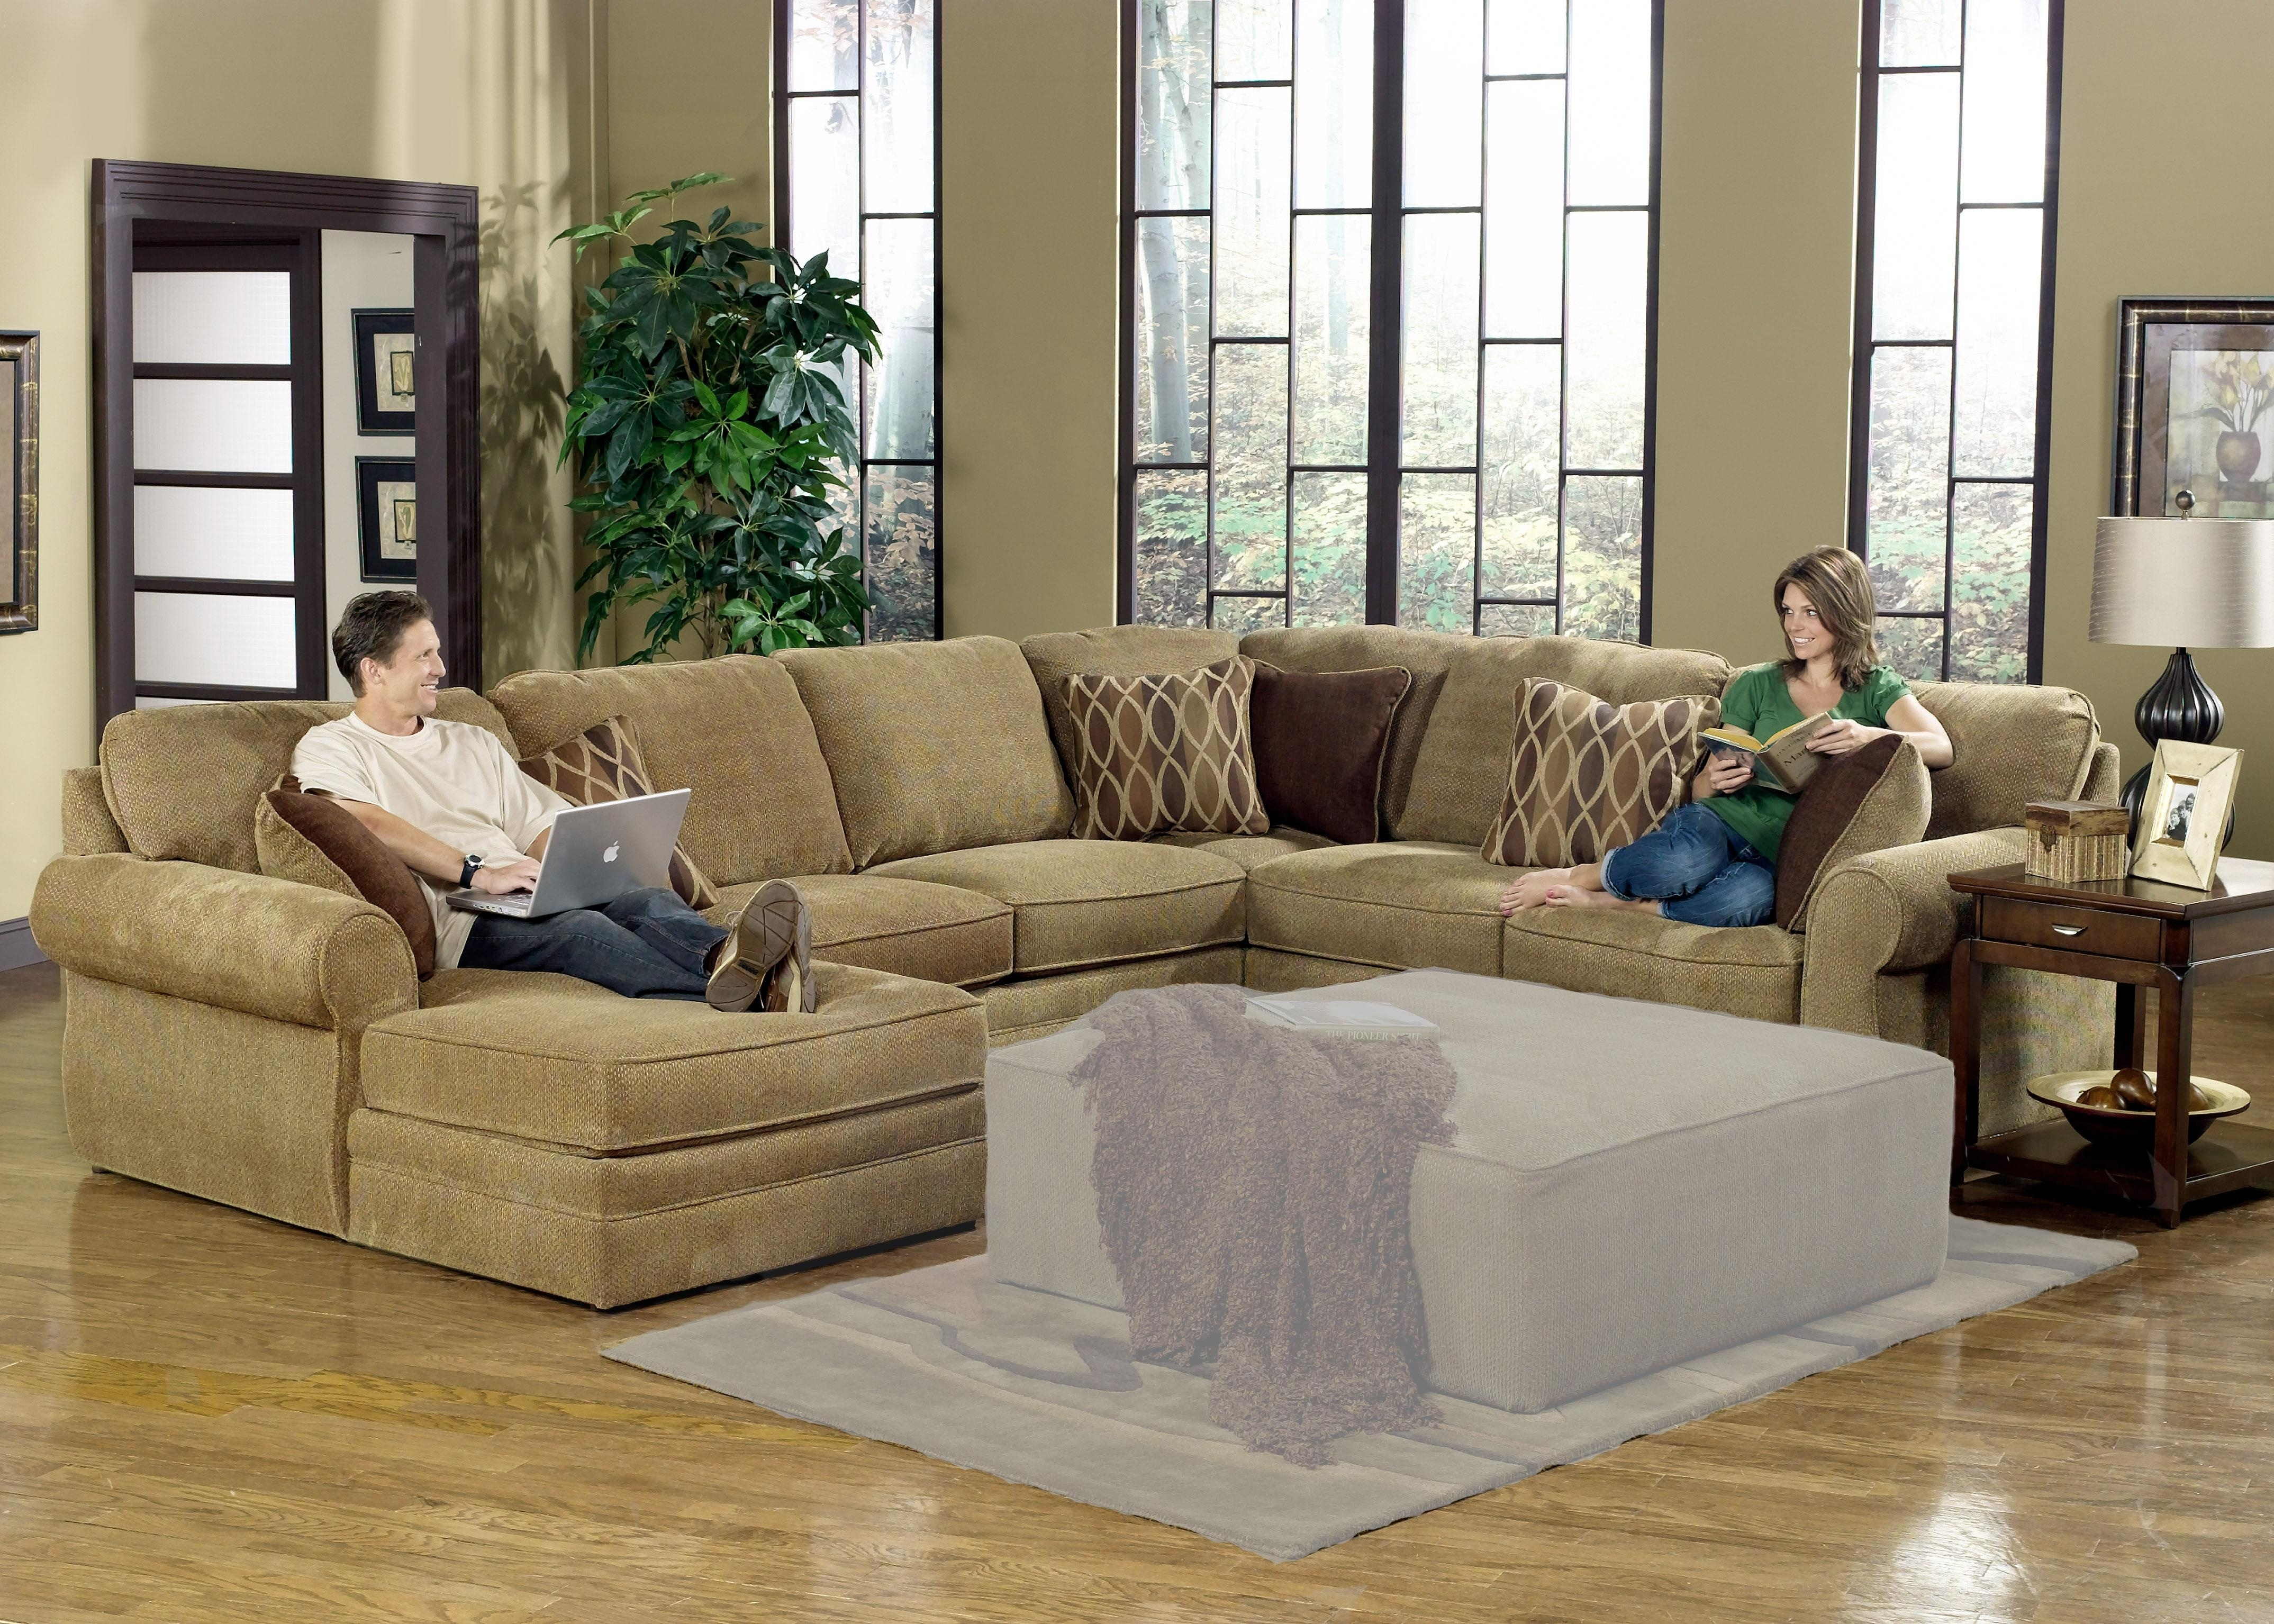 Fresh Cheap U Shaped Sectional Sofas 89 In Sleeper Sofa Atlanta With For Sectional Sofas In Atlanta (View 7 of 10)